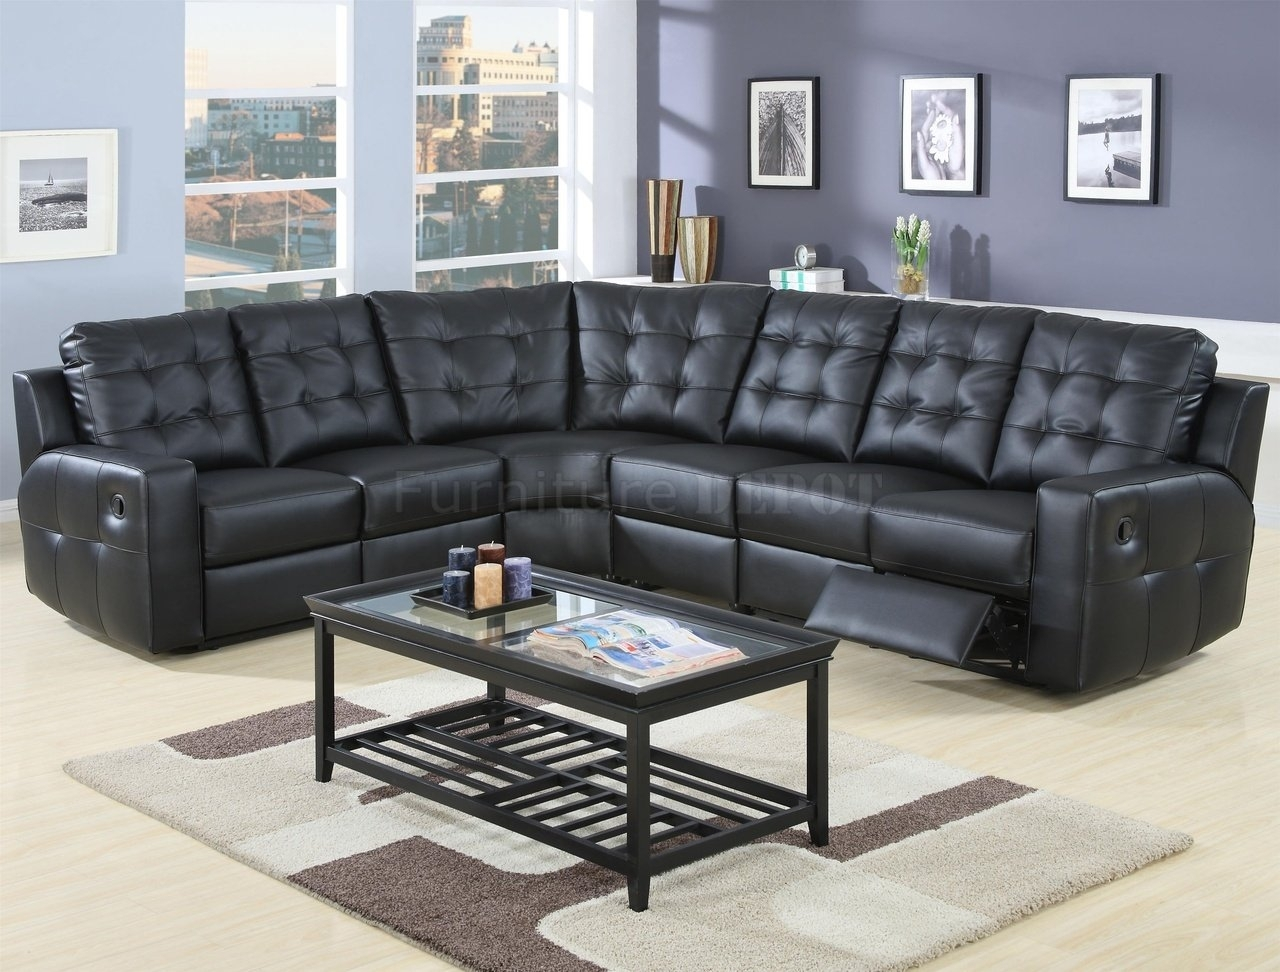 10 Inspirations Jacksonville Florida Sectional Sofas Sofa Ideas